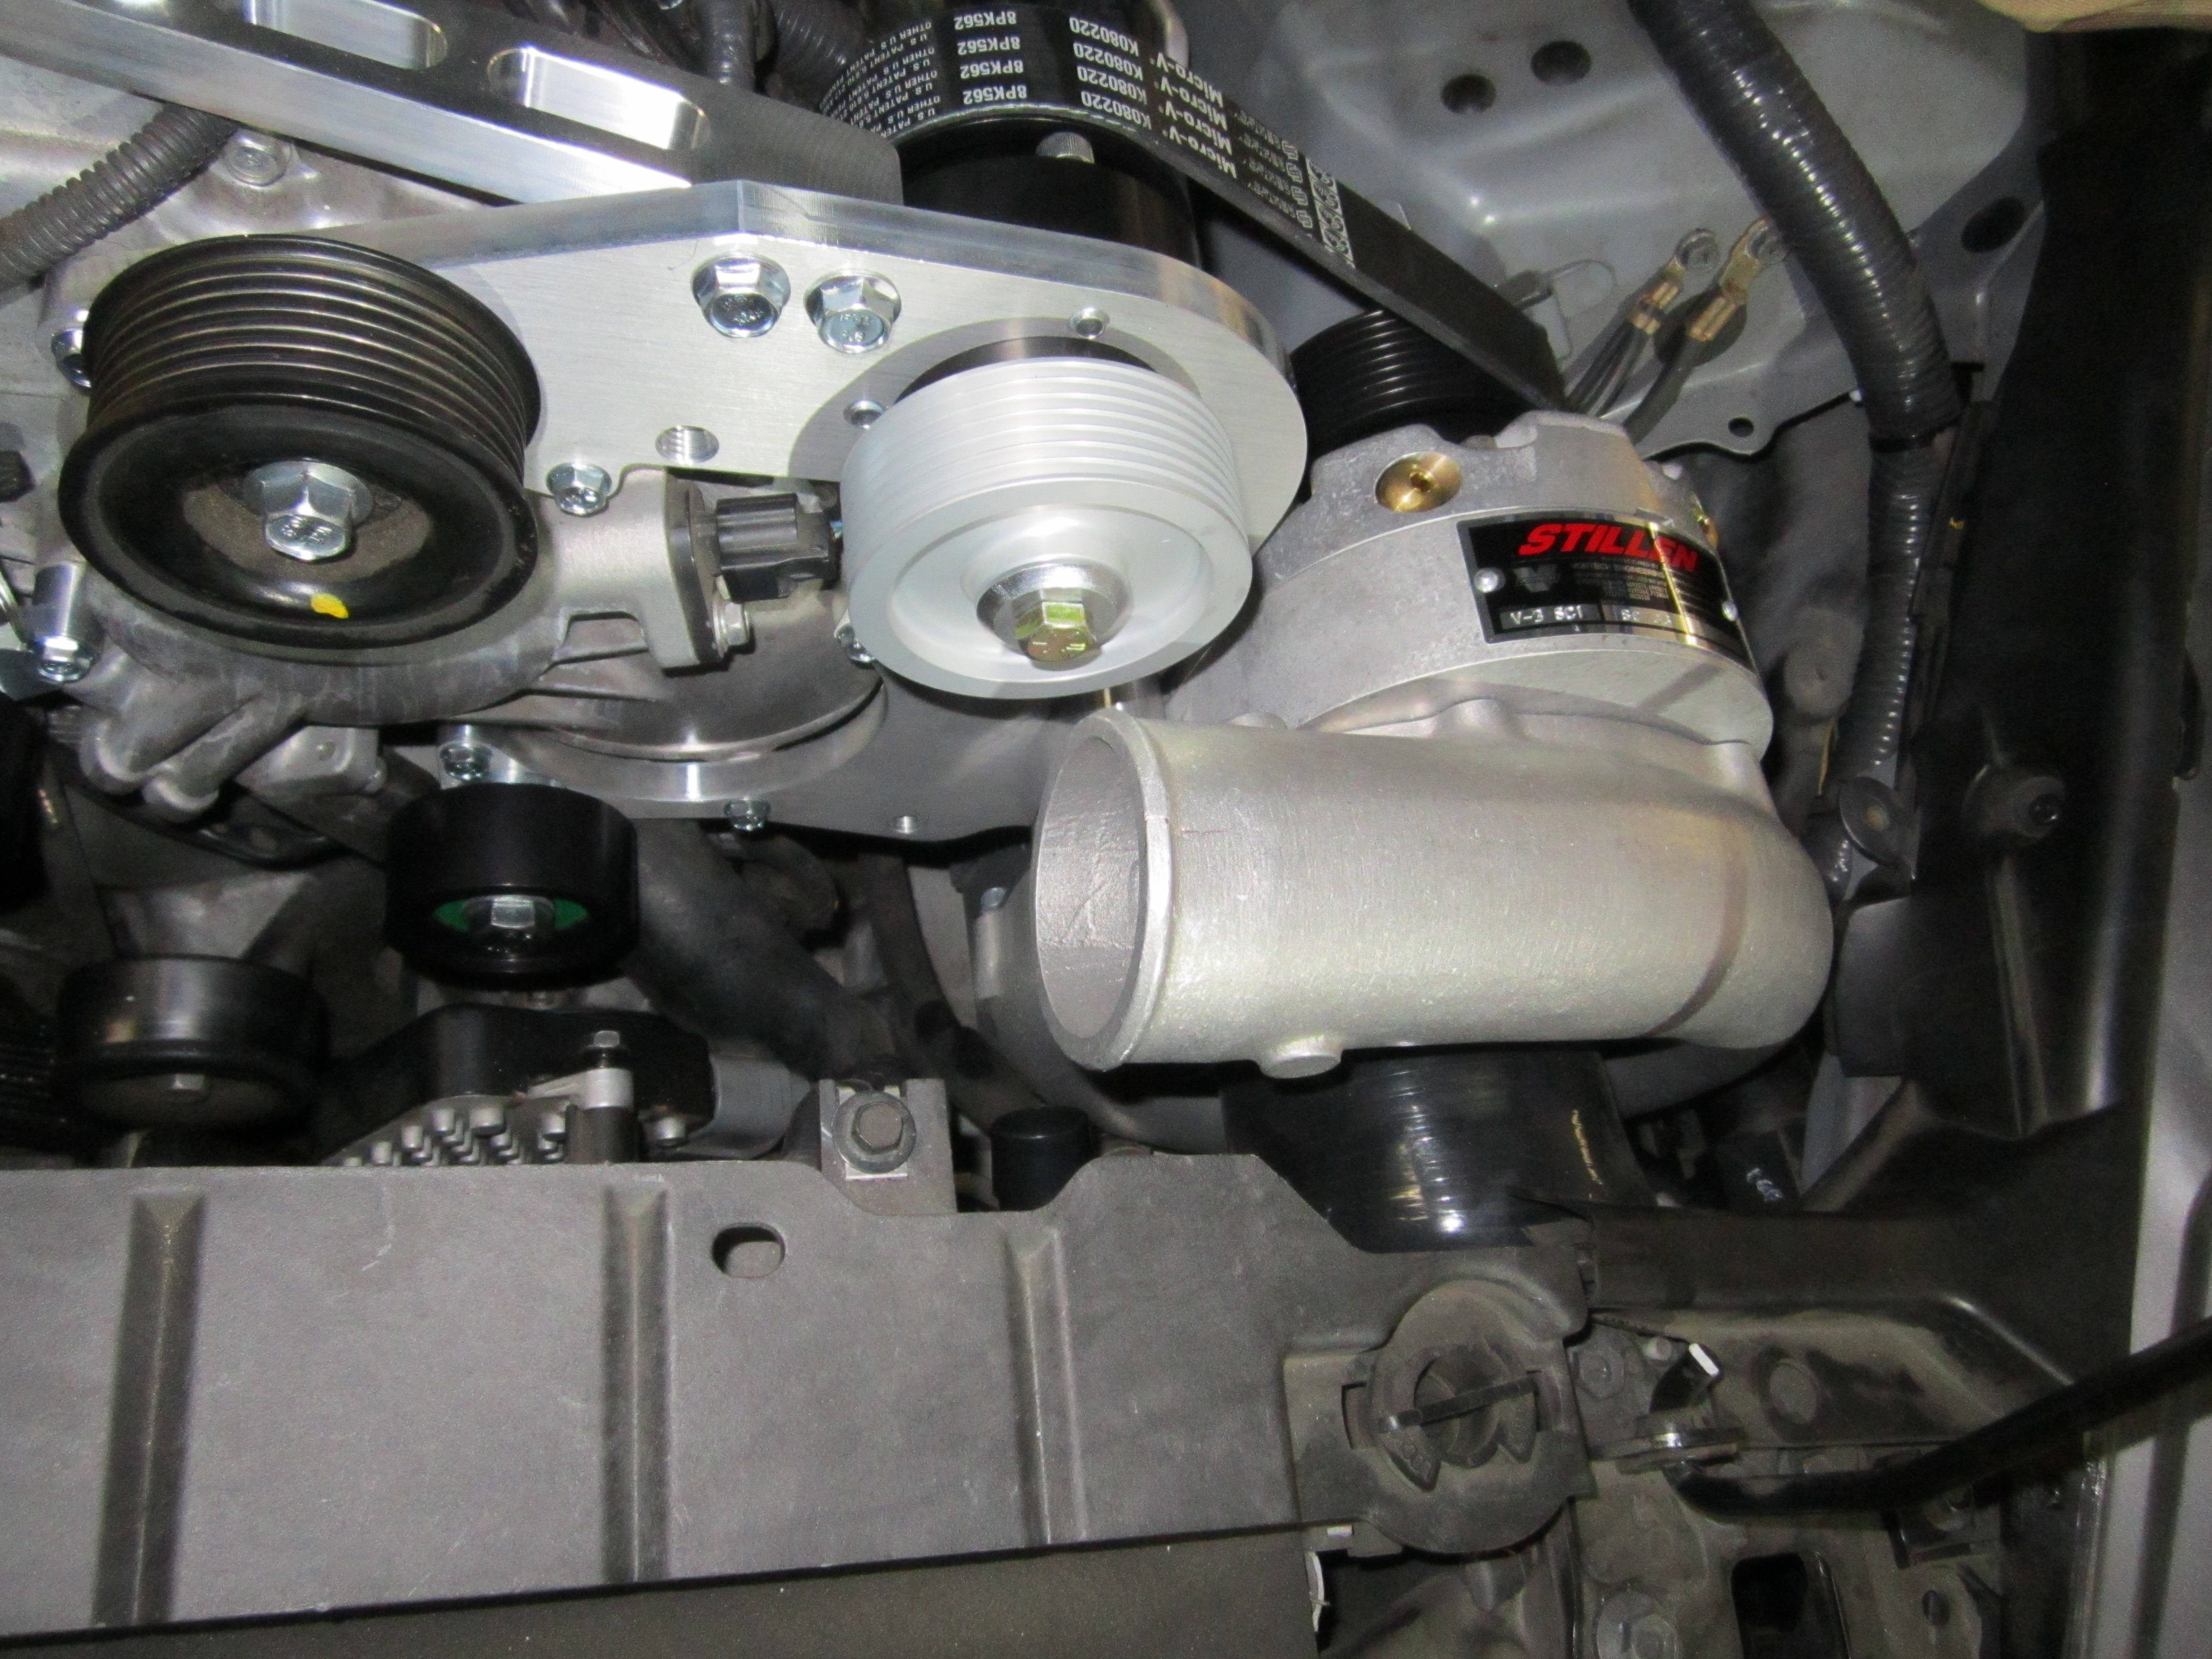 Z Car Blog Nissan 370z Engine Diagram As With Many Of Our Stillen S C Installations Miguel Also Received A Oil Cooler Gtr Plugs And An Change New Filter